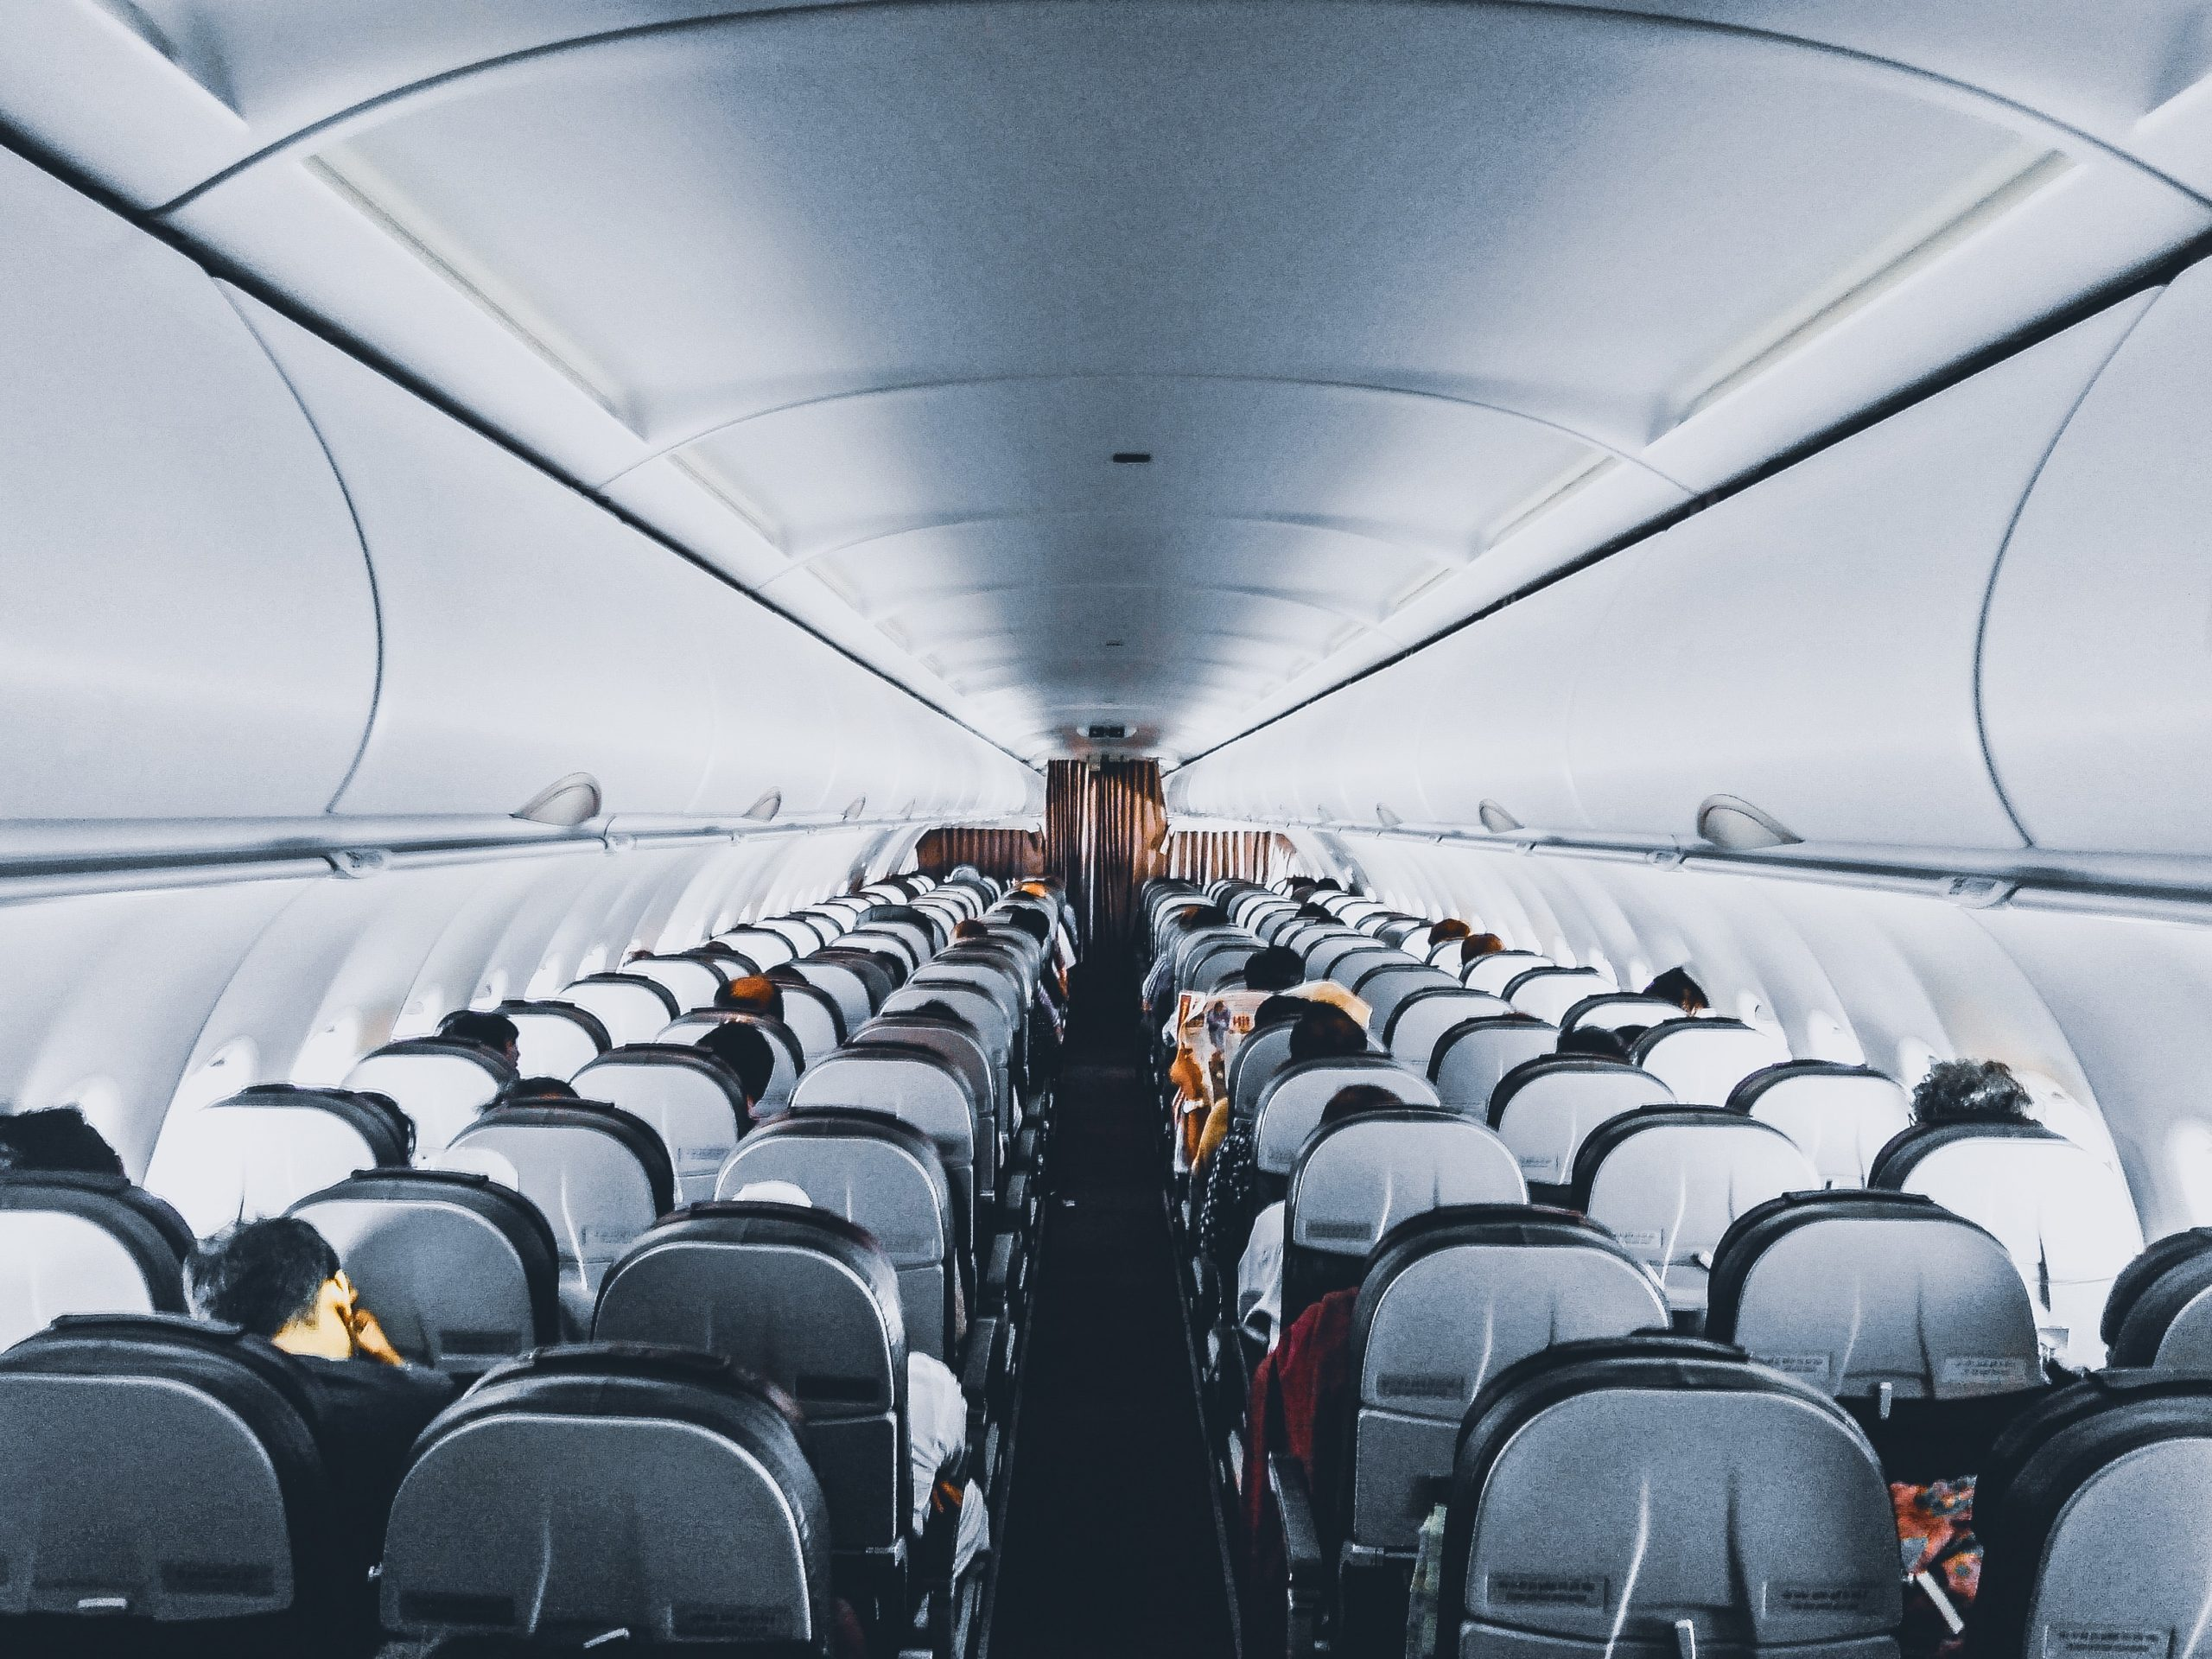 people-inside-commercial-air-plane-1309644-083660-jZh1ElVn-scaled